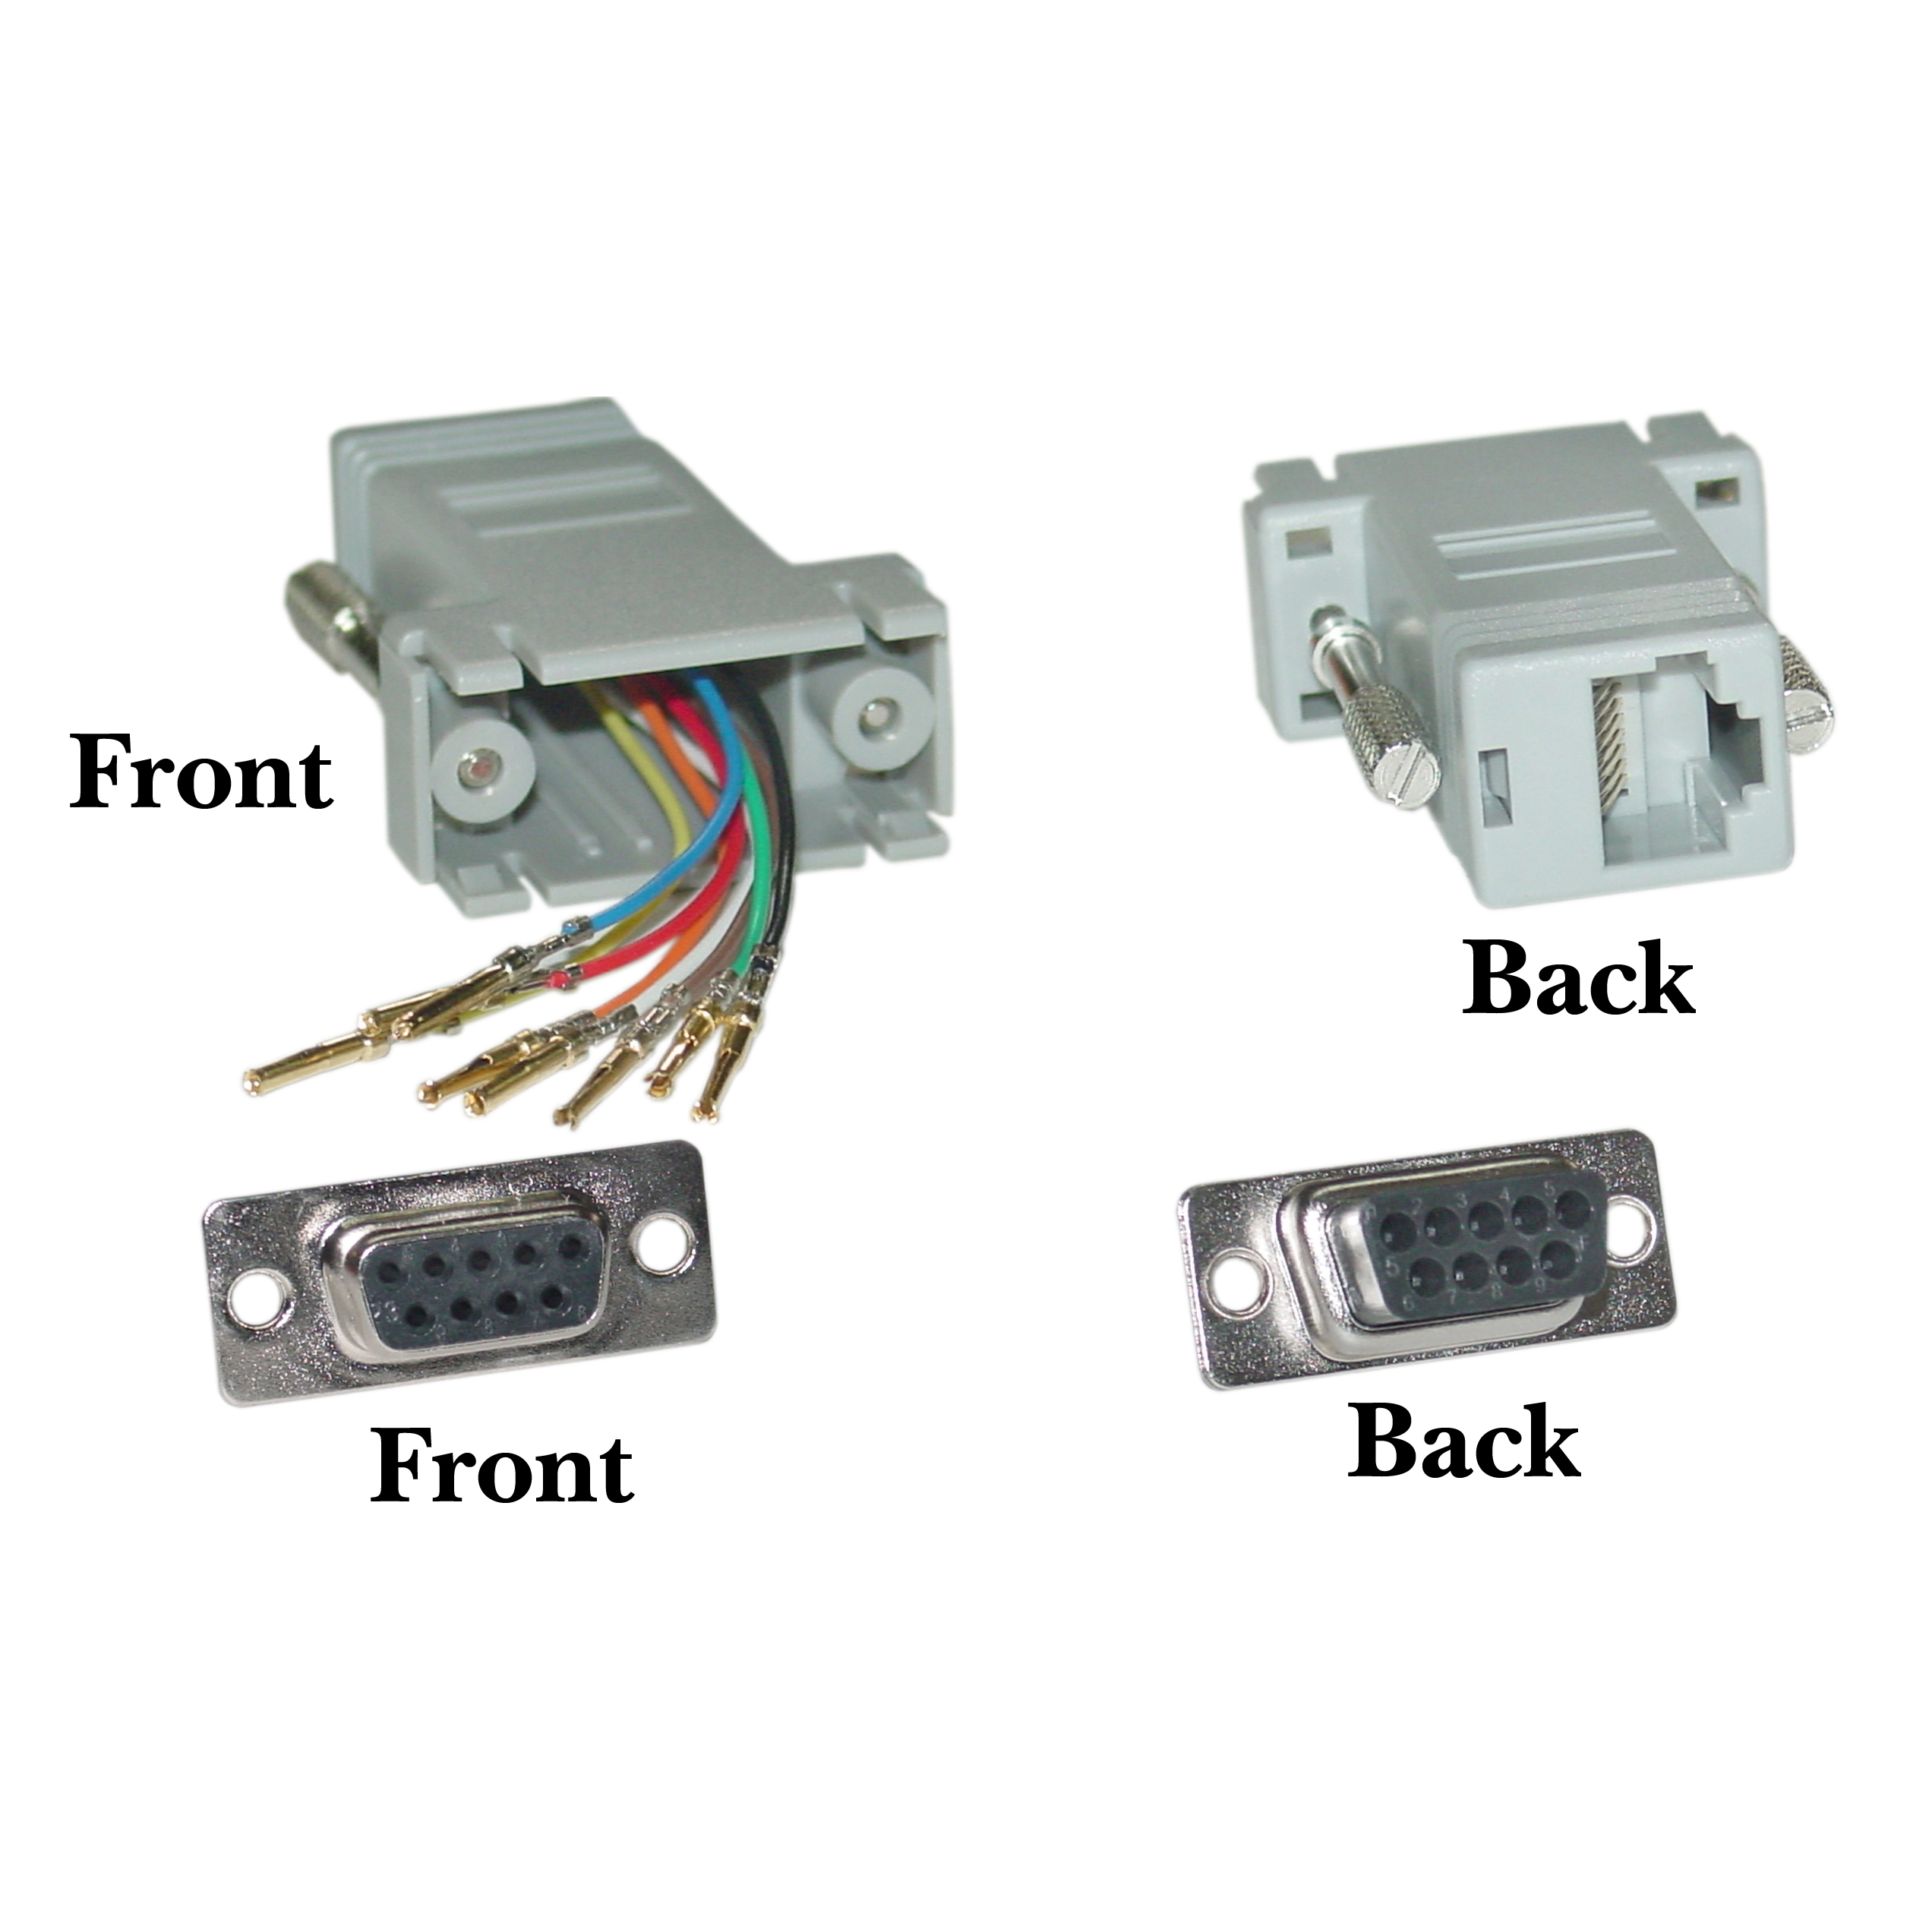 31d1 17400 db9 female to rj45 modular adapter rj45 to db9 adapter wiring diagram at crackthecode.co